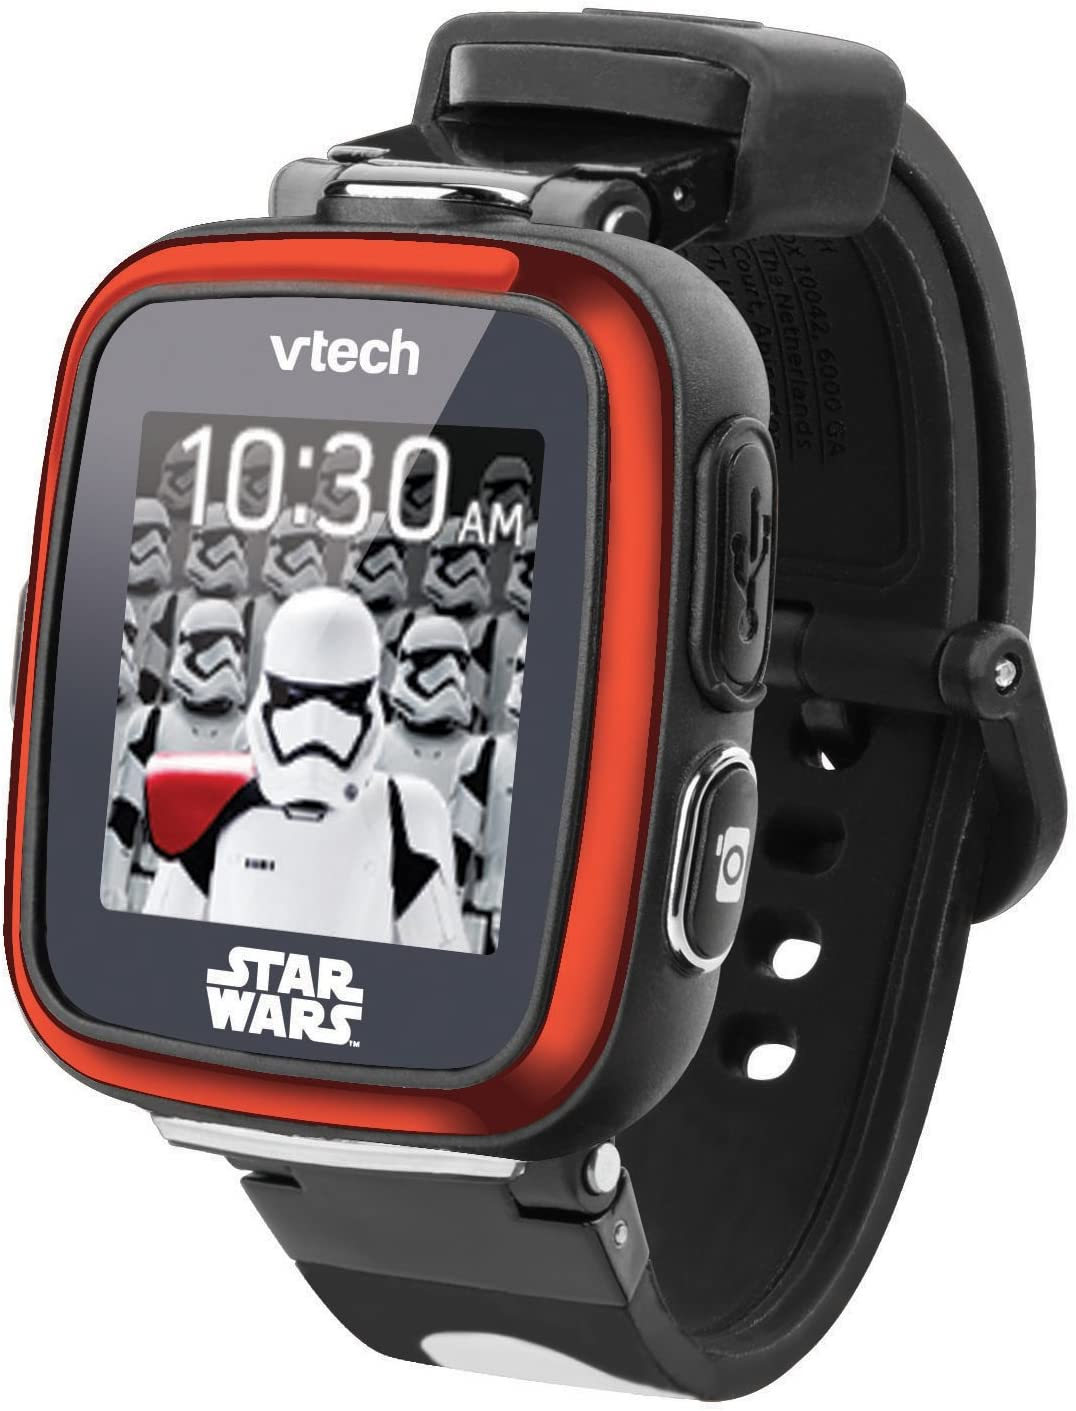 VTech Reloj multifunción Star Wars Trooper Black (3480-194227)